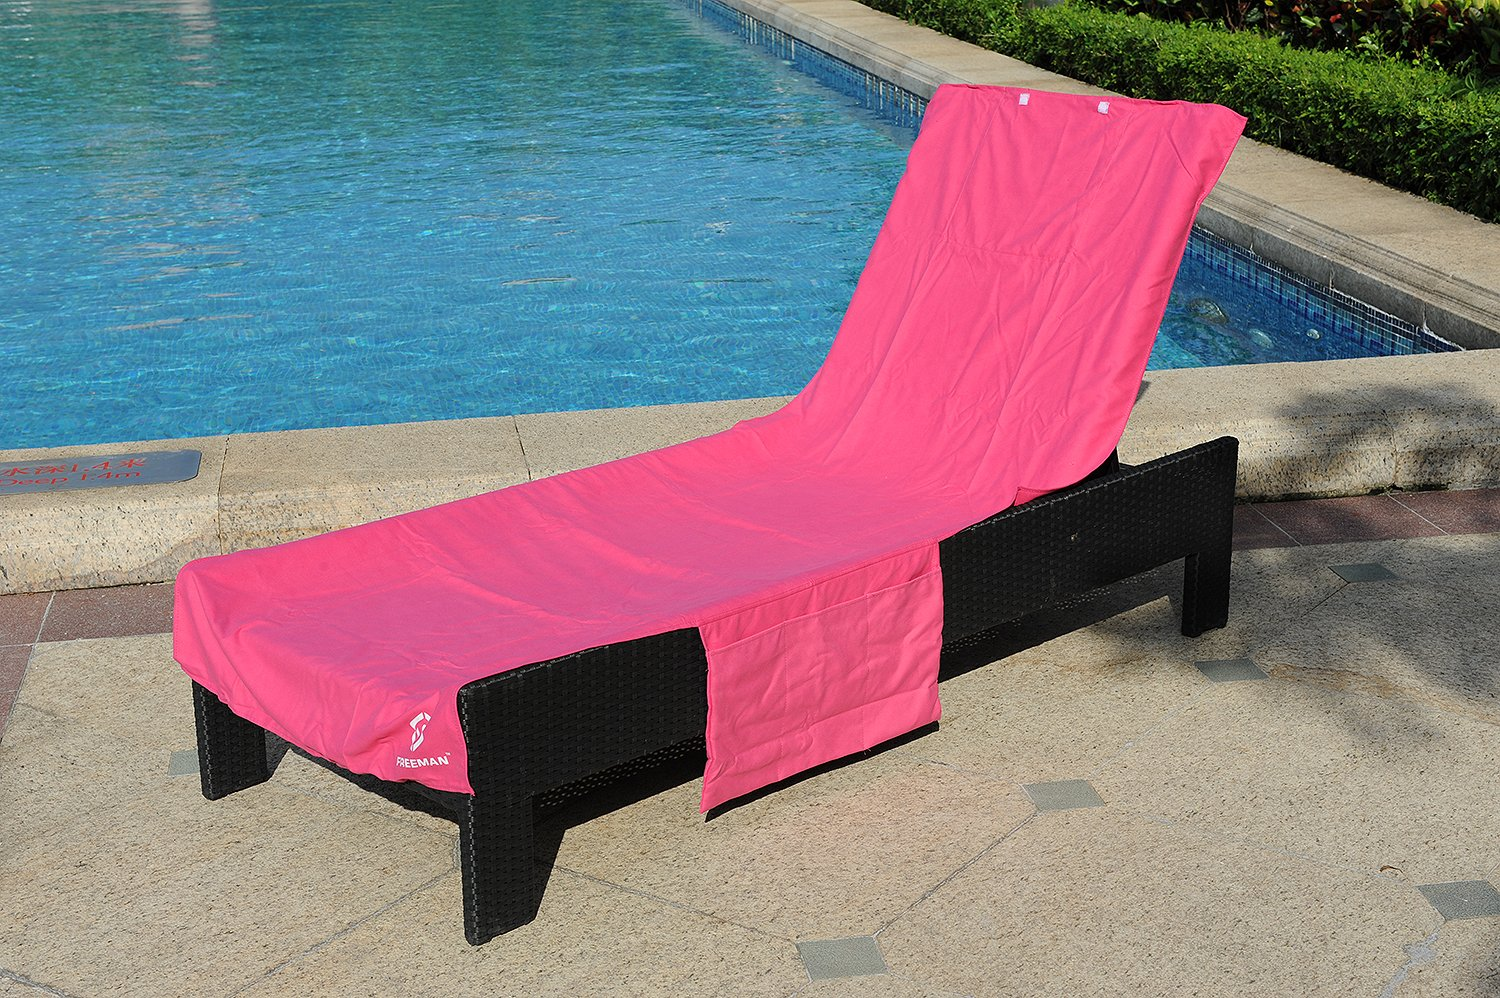 Lounge Chair Towels Cheap Lounge Chair Cover Beach Towel Find Lounge Chair Cover